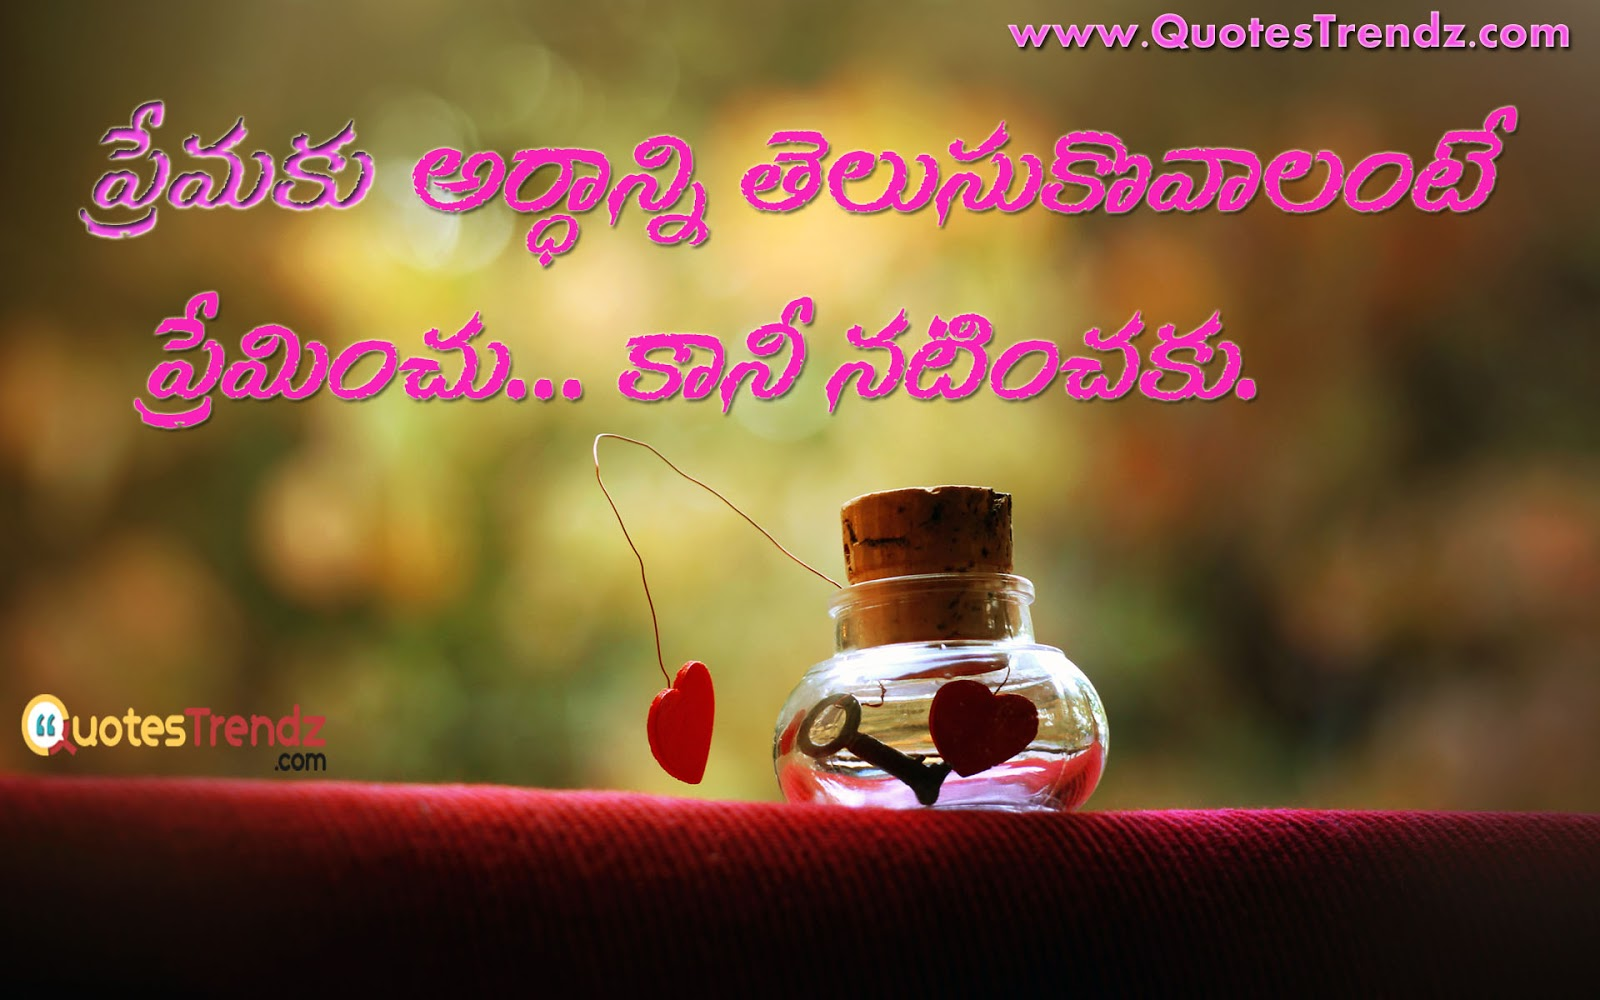 Telugu Love Quotes Alluring Telugu Love Quotes  Quotestrendz